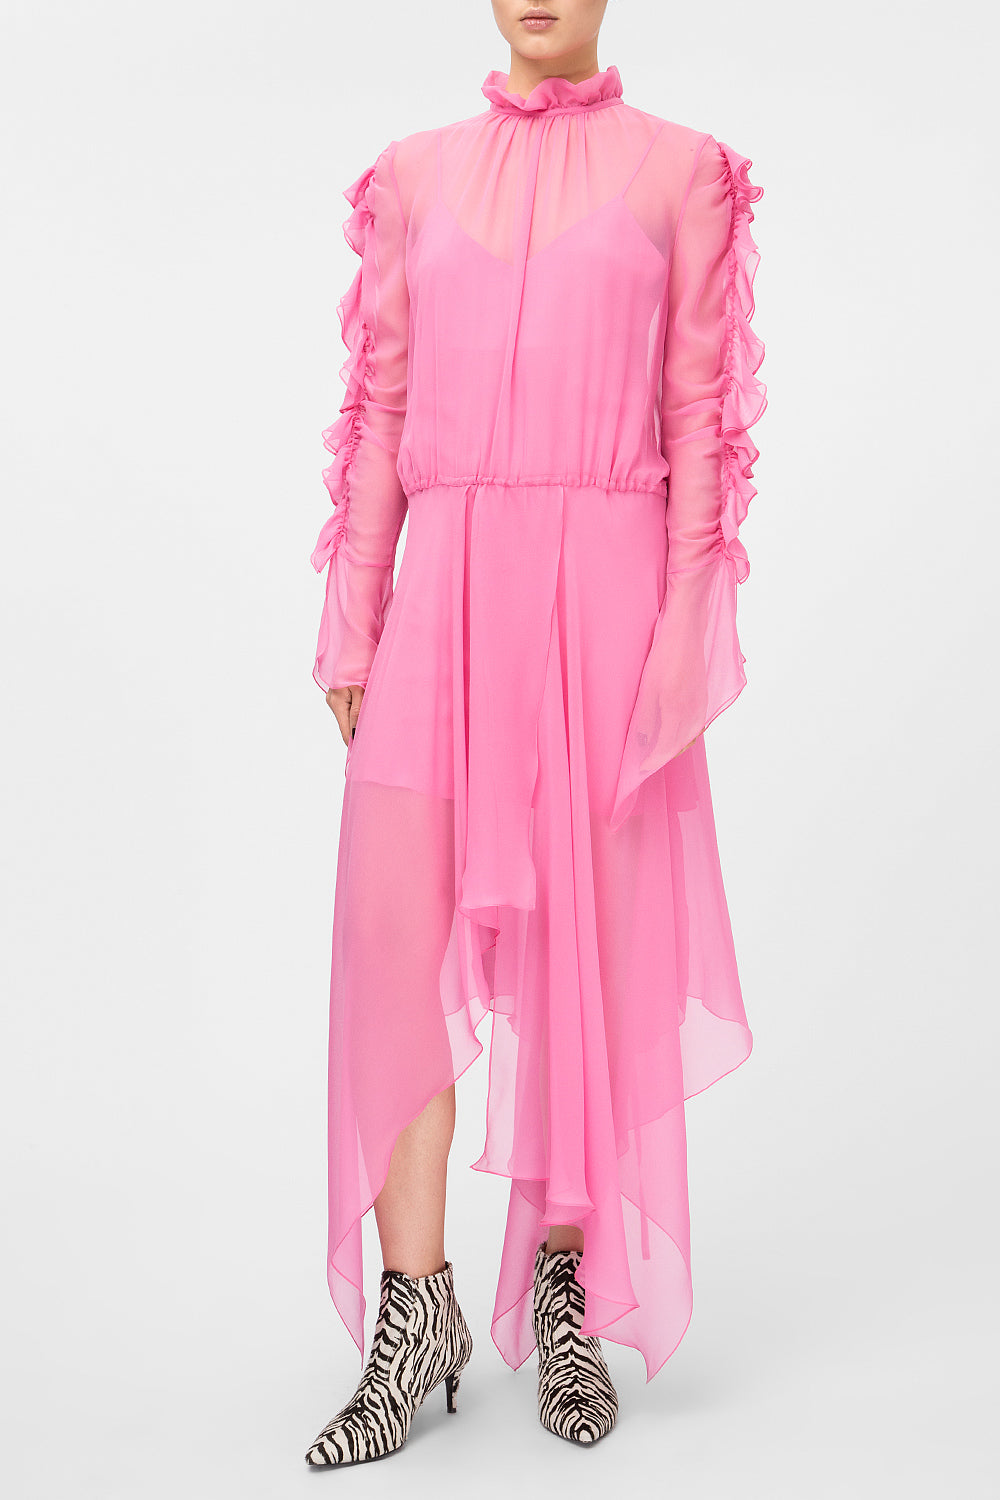 Pink silk dress with flounces on sleeves